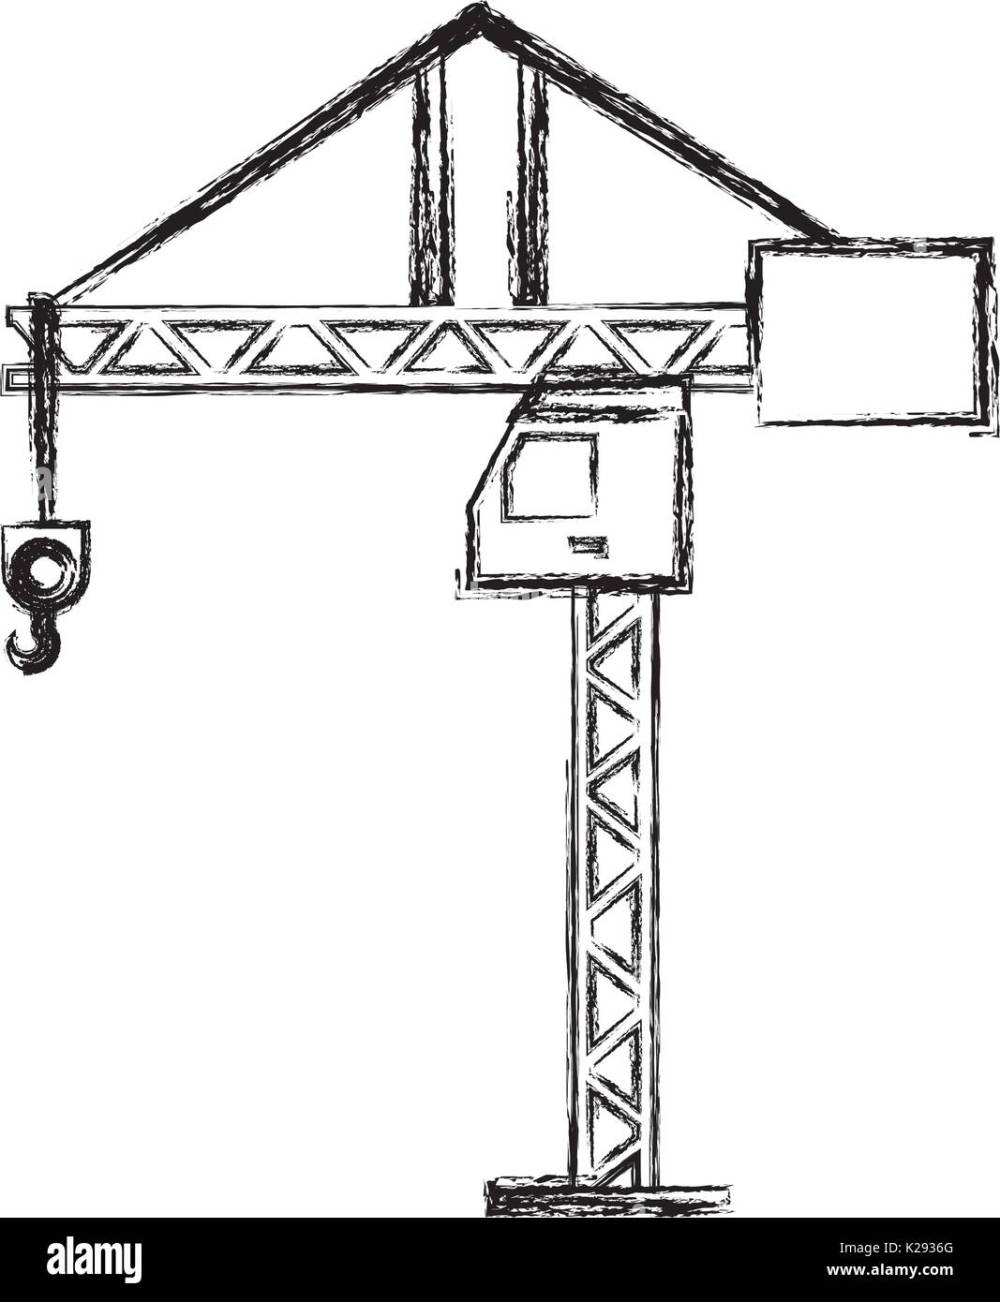 medium resolution of tower crane symbol